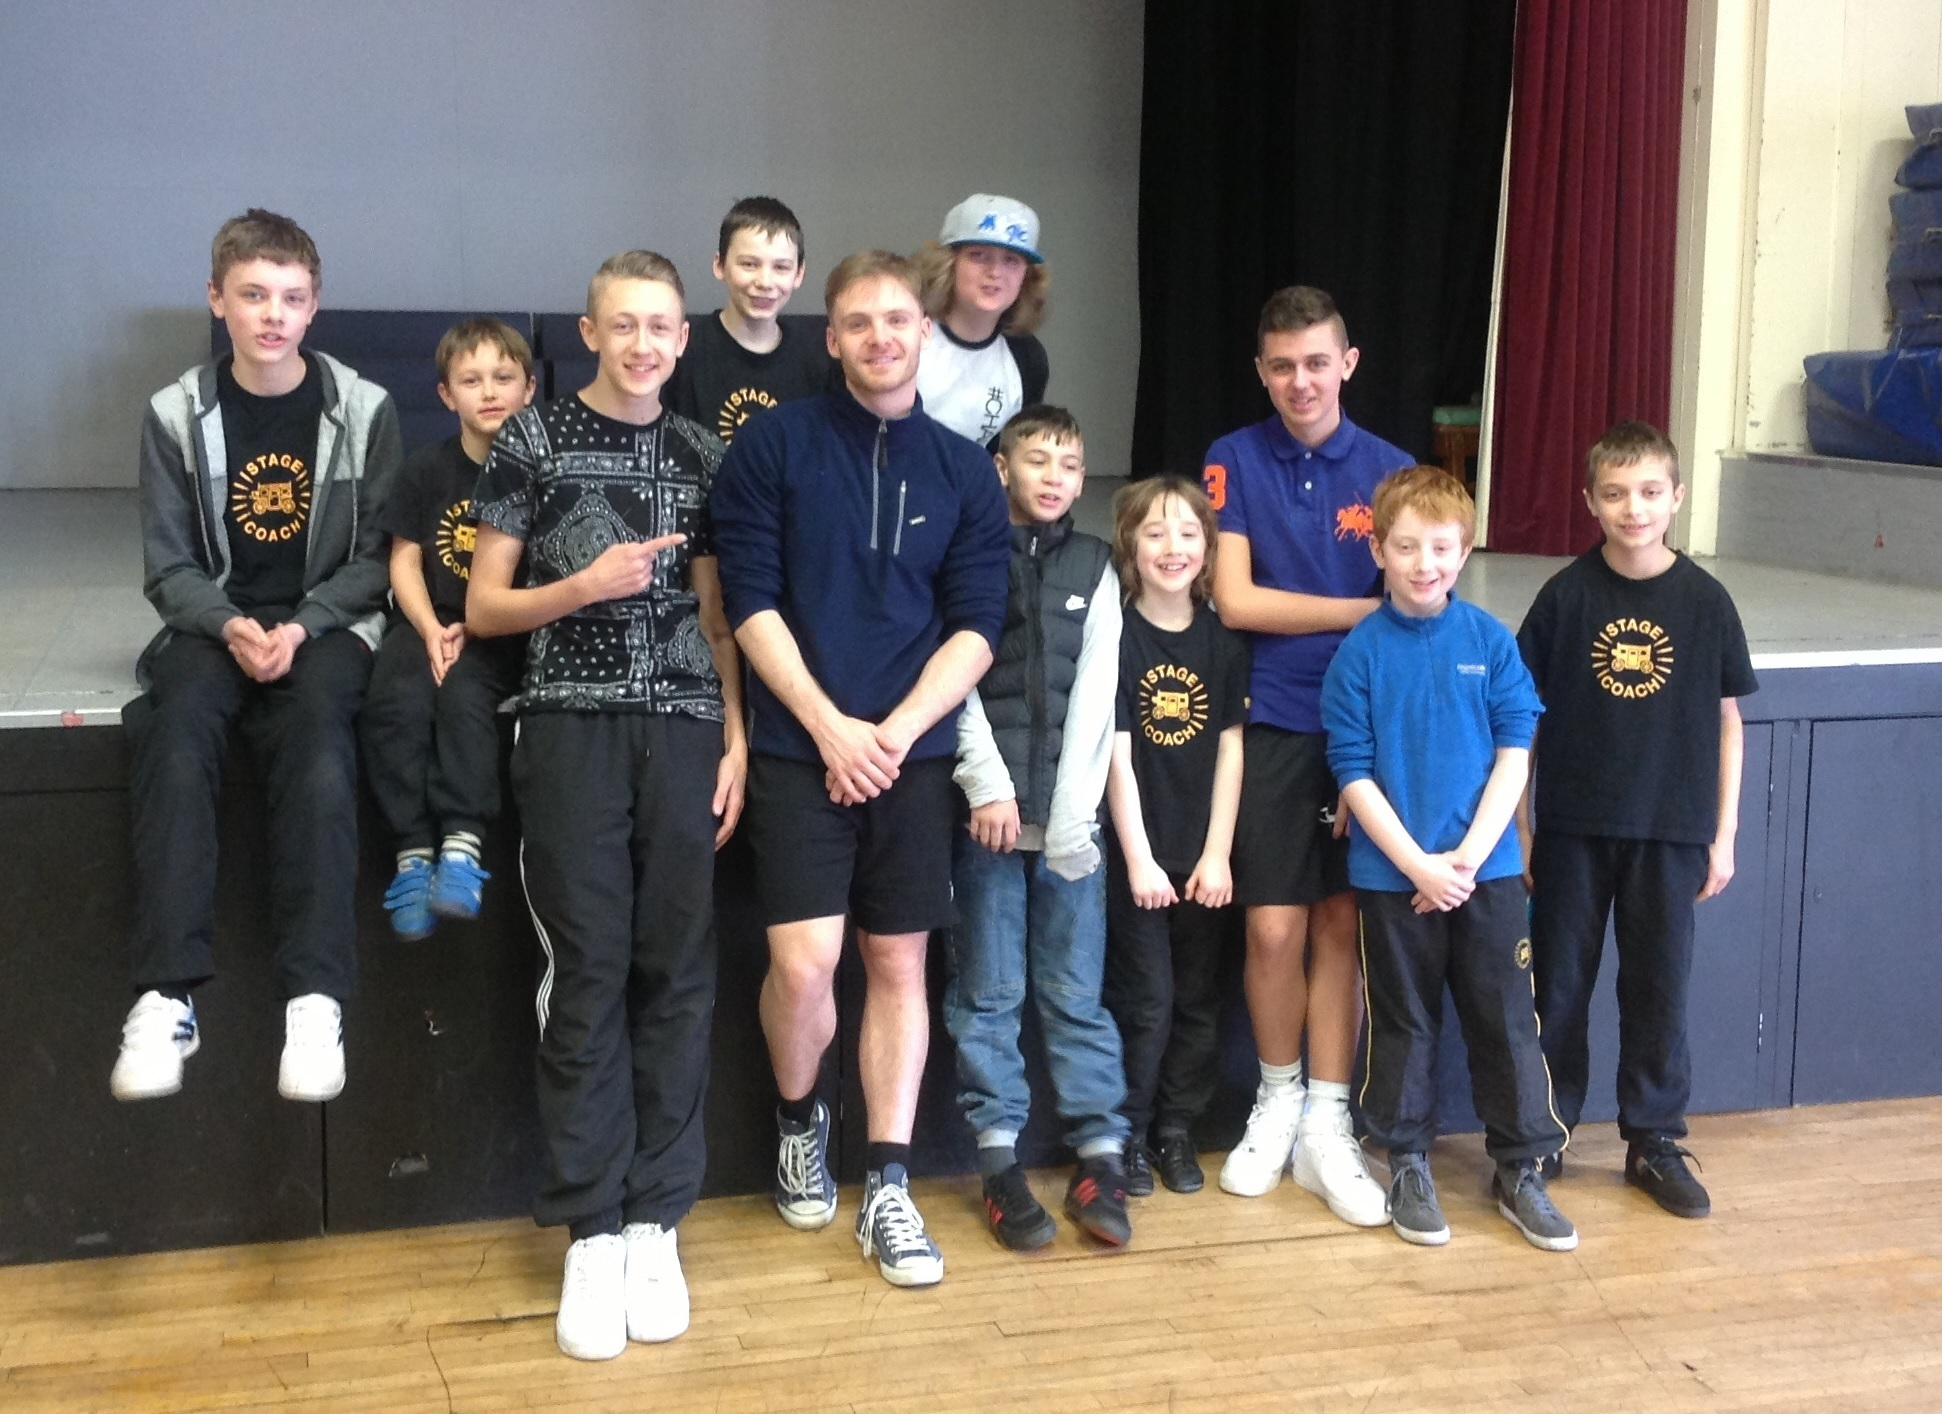 L-R: James Parsons, Zak Starkey, Jack Sanders, Kieran Sims, Ashley Andrews, Will Taylor, Joe Oliver, Fionn Guerin, Joshua Hill, Aran Guerin and Henry Blakeway.